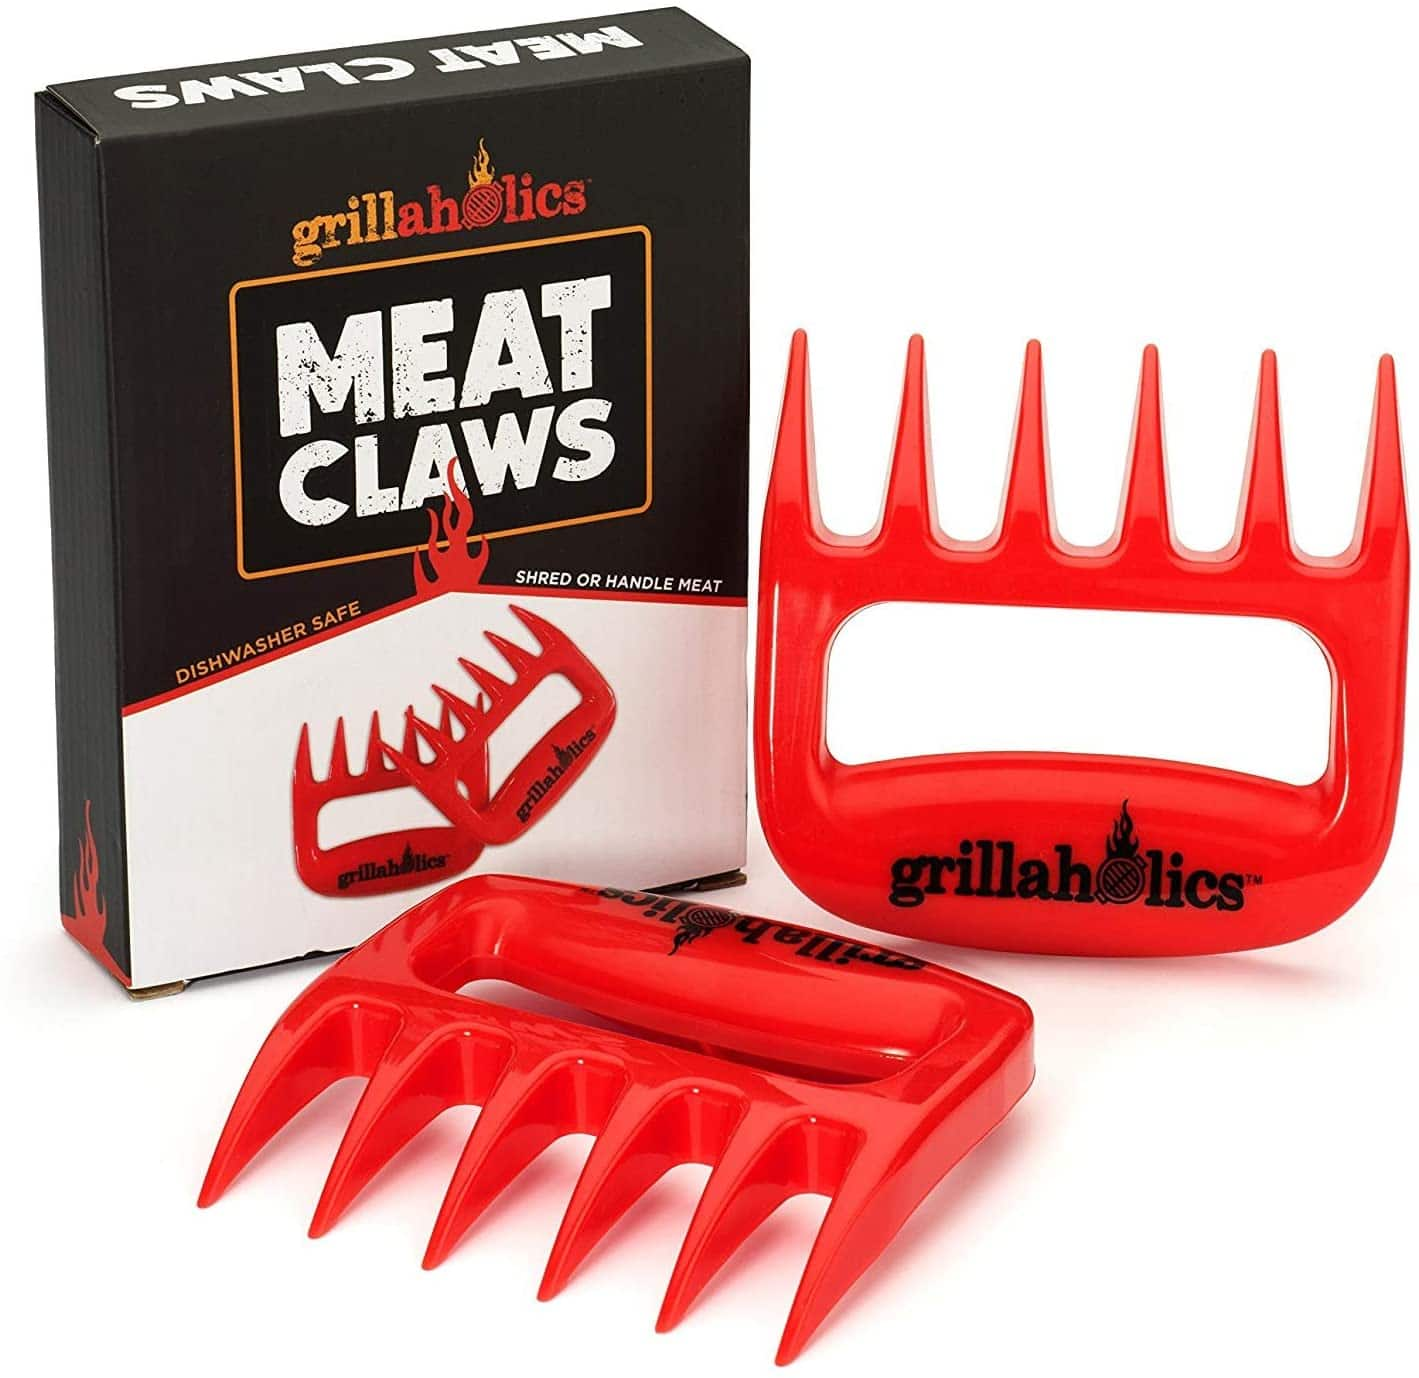 kitchen-gadget-gifts-claws